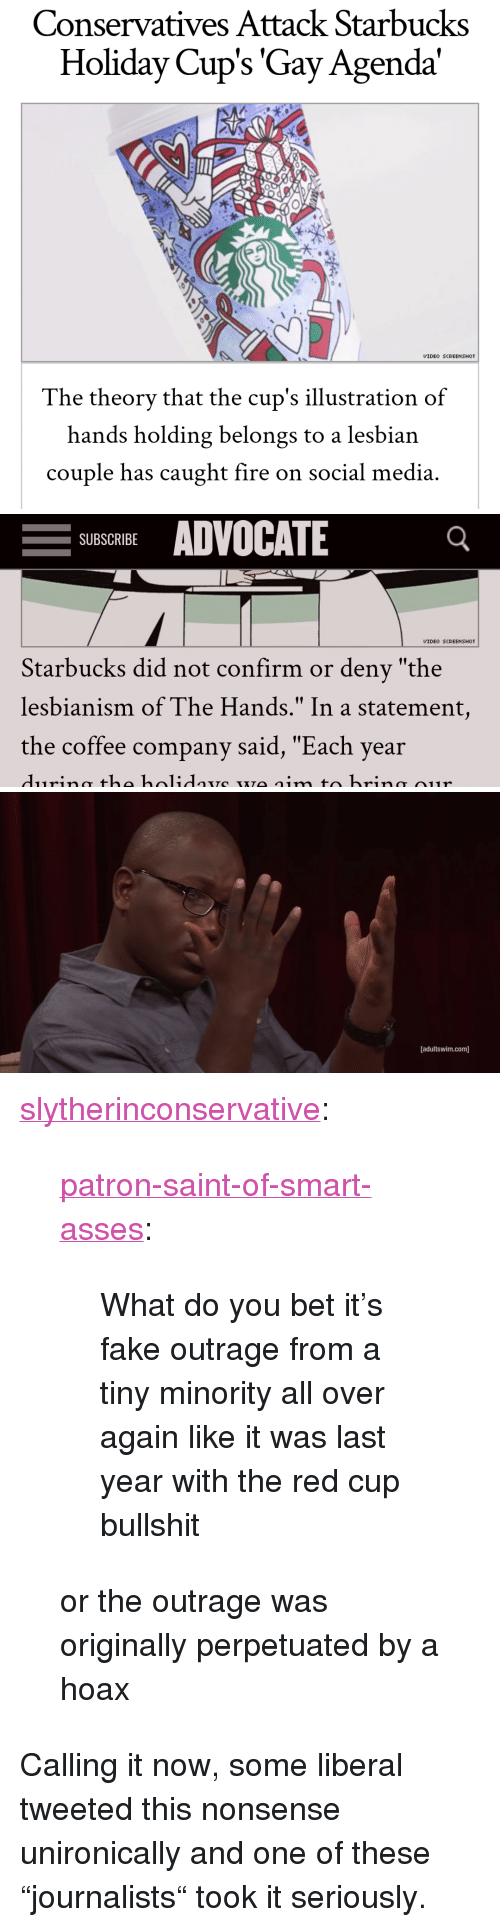 """Fake, Fire, and Social Media: Conservatives Attack Starbucks  Holiday Cup's 'Gay Agenda'  VIDEO SCREENSHOT  The theorv that the cup's illustration of  hands holding belongs to a lesbian  couple has caught fire on social media   -SUBSCRIBE ADVOCATE  VIDEO SCREENSHOT  Starbucks did not confirm or deny """"the  lesbianism of The Hands."""" In a statement,  the coffee company said, """"Each year   [adultswim.com] <p><a href=""""http://slytherinconservative.tumblr.com/post/167759335839/patron-saint-of-smart-asses-what-do-you-bet-its"""" class=""""tumblr_blog"""">slytherinconservative</a>:</p>  <blockquote><p><a href=""""https://patron-saint-of-smart-asses.tumblr.com/post/167758489234/what-do-you-bet-its-fake-outrage-from-a-tiny"""" class=""""tumblr_blog"""">patron-saint-of-smart-asses</a>:</p><blockquote><p>What do you bet it's fake outrage from a tiny minority all over again like it was last year with the red cup bullshit</p></blockquote> <p style="""""""">or the outrage was originally perpetuated by a hoax<br/></p></blockquote>  <p>Calling it now, some liberal tweeted this nonsense unironically and one of these """"journalists"""" took it seriously.</p>"""